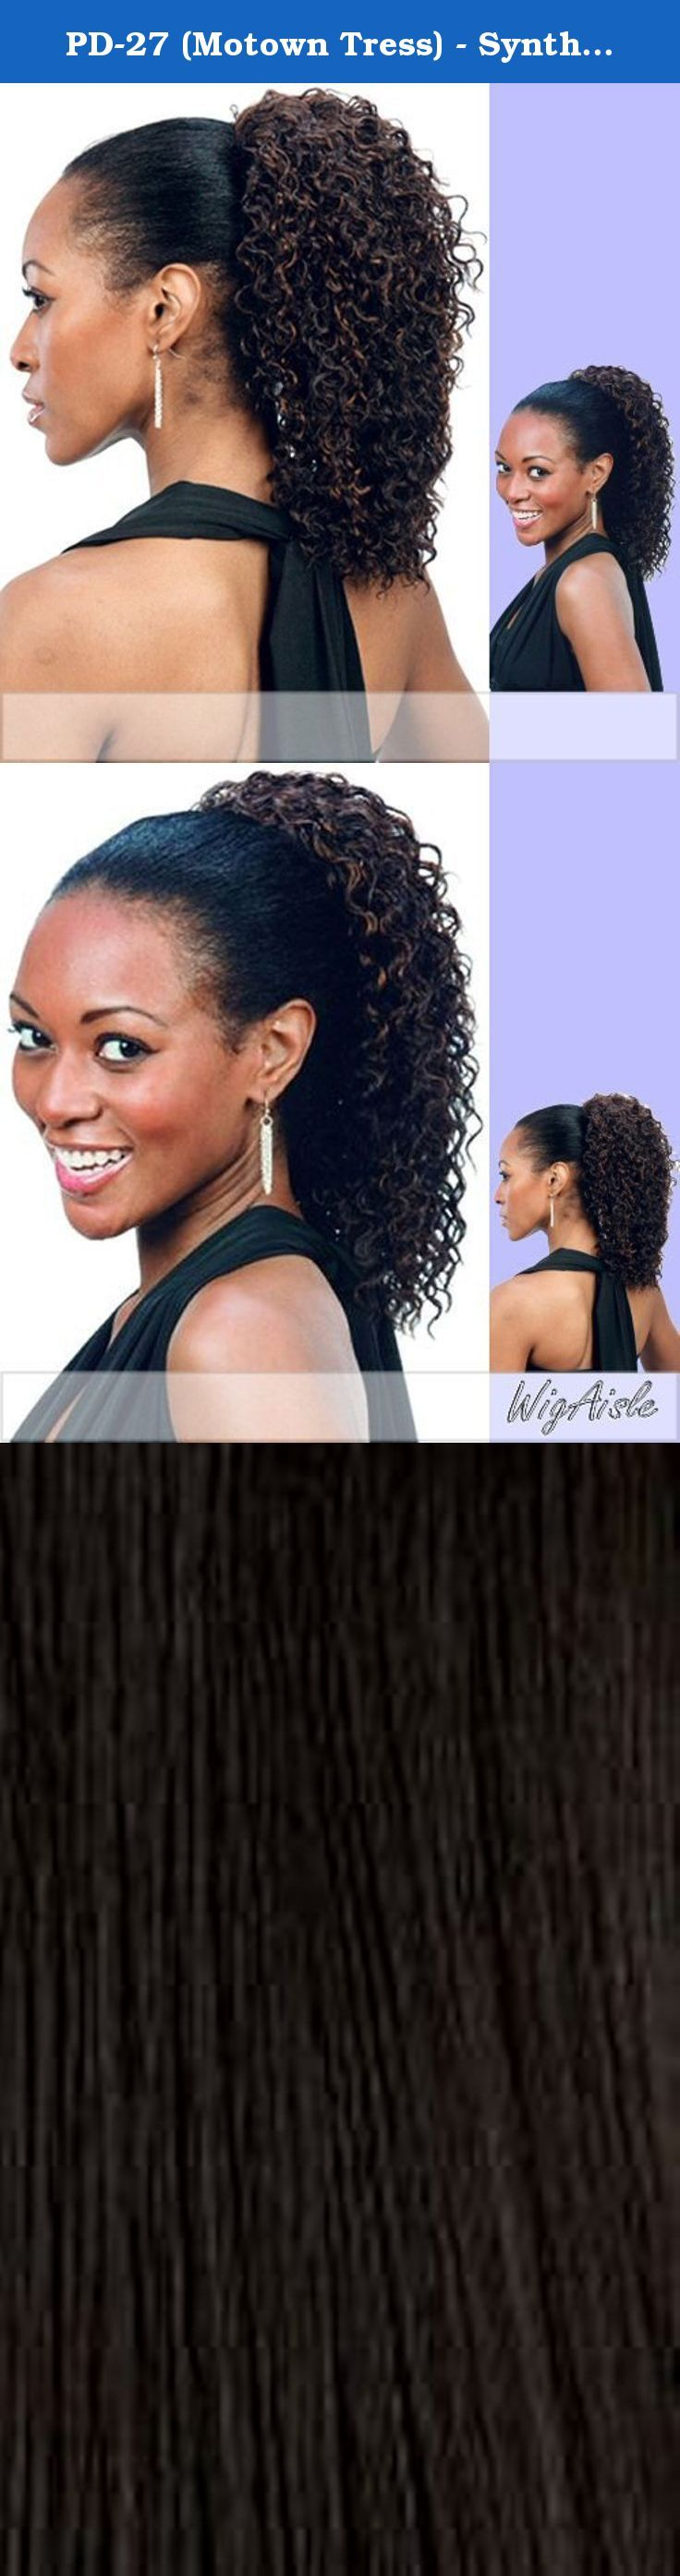 PD-27 (Motown Tress) - Synthetic Ponytail in 1. Color 1 is JET BLACK (Color shown is 1BF30) - DEEP WAVE LAYERED MID LONG.